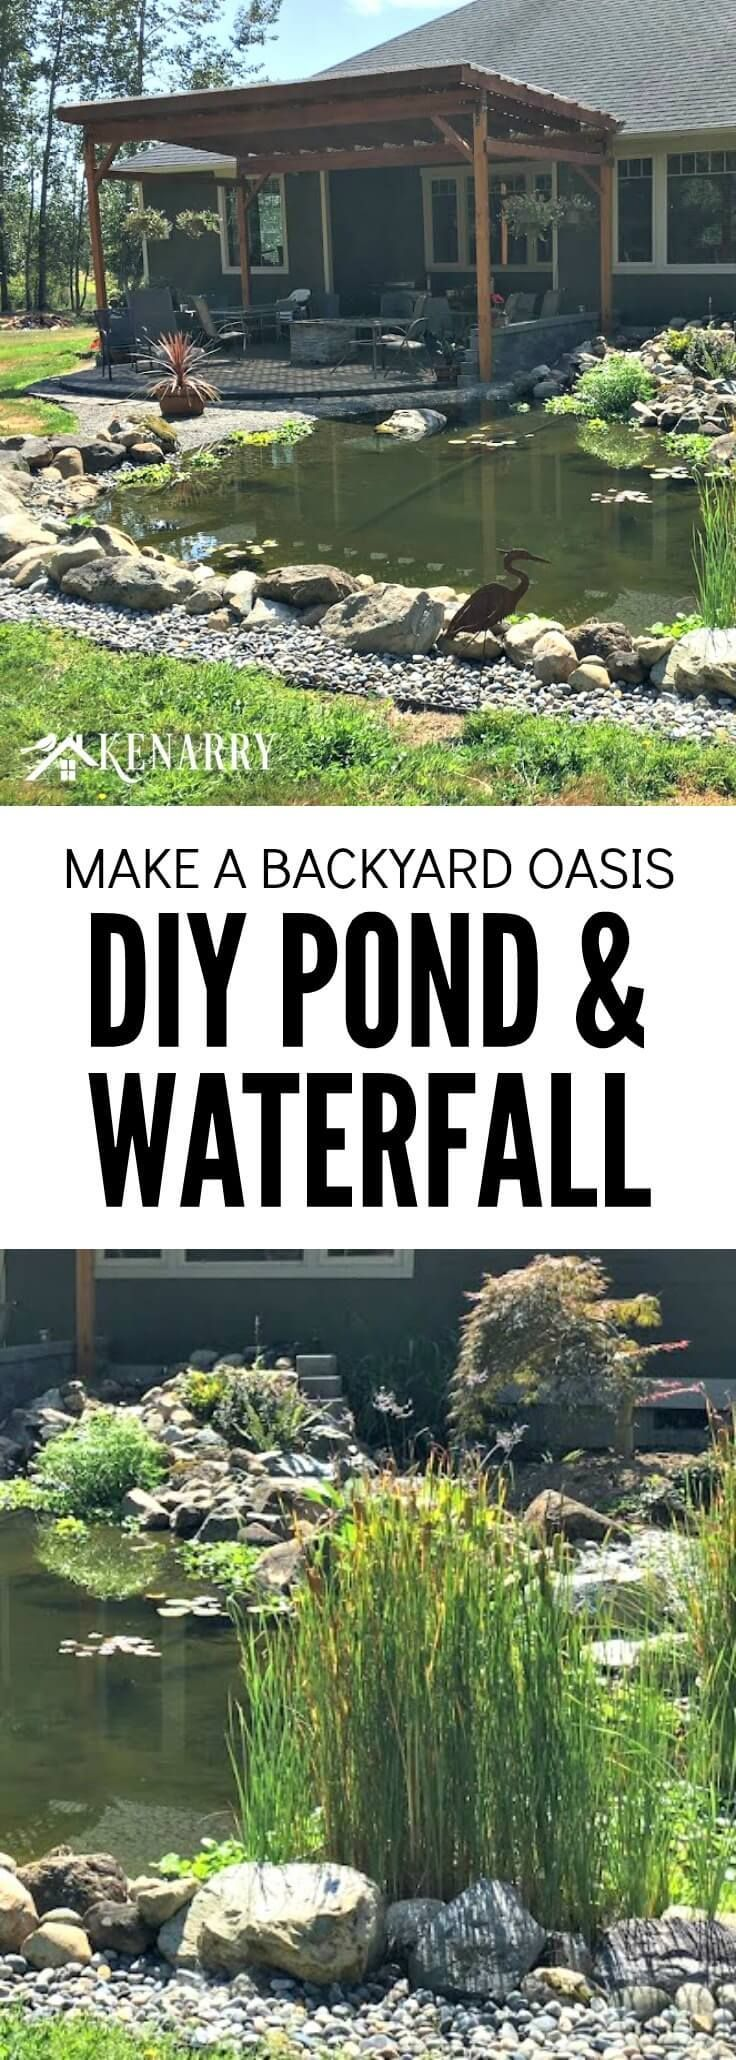 Diy Pond The 25 Best Diy Pond Ideas On Pinterest Turtle Pond Tire Pond